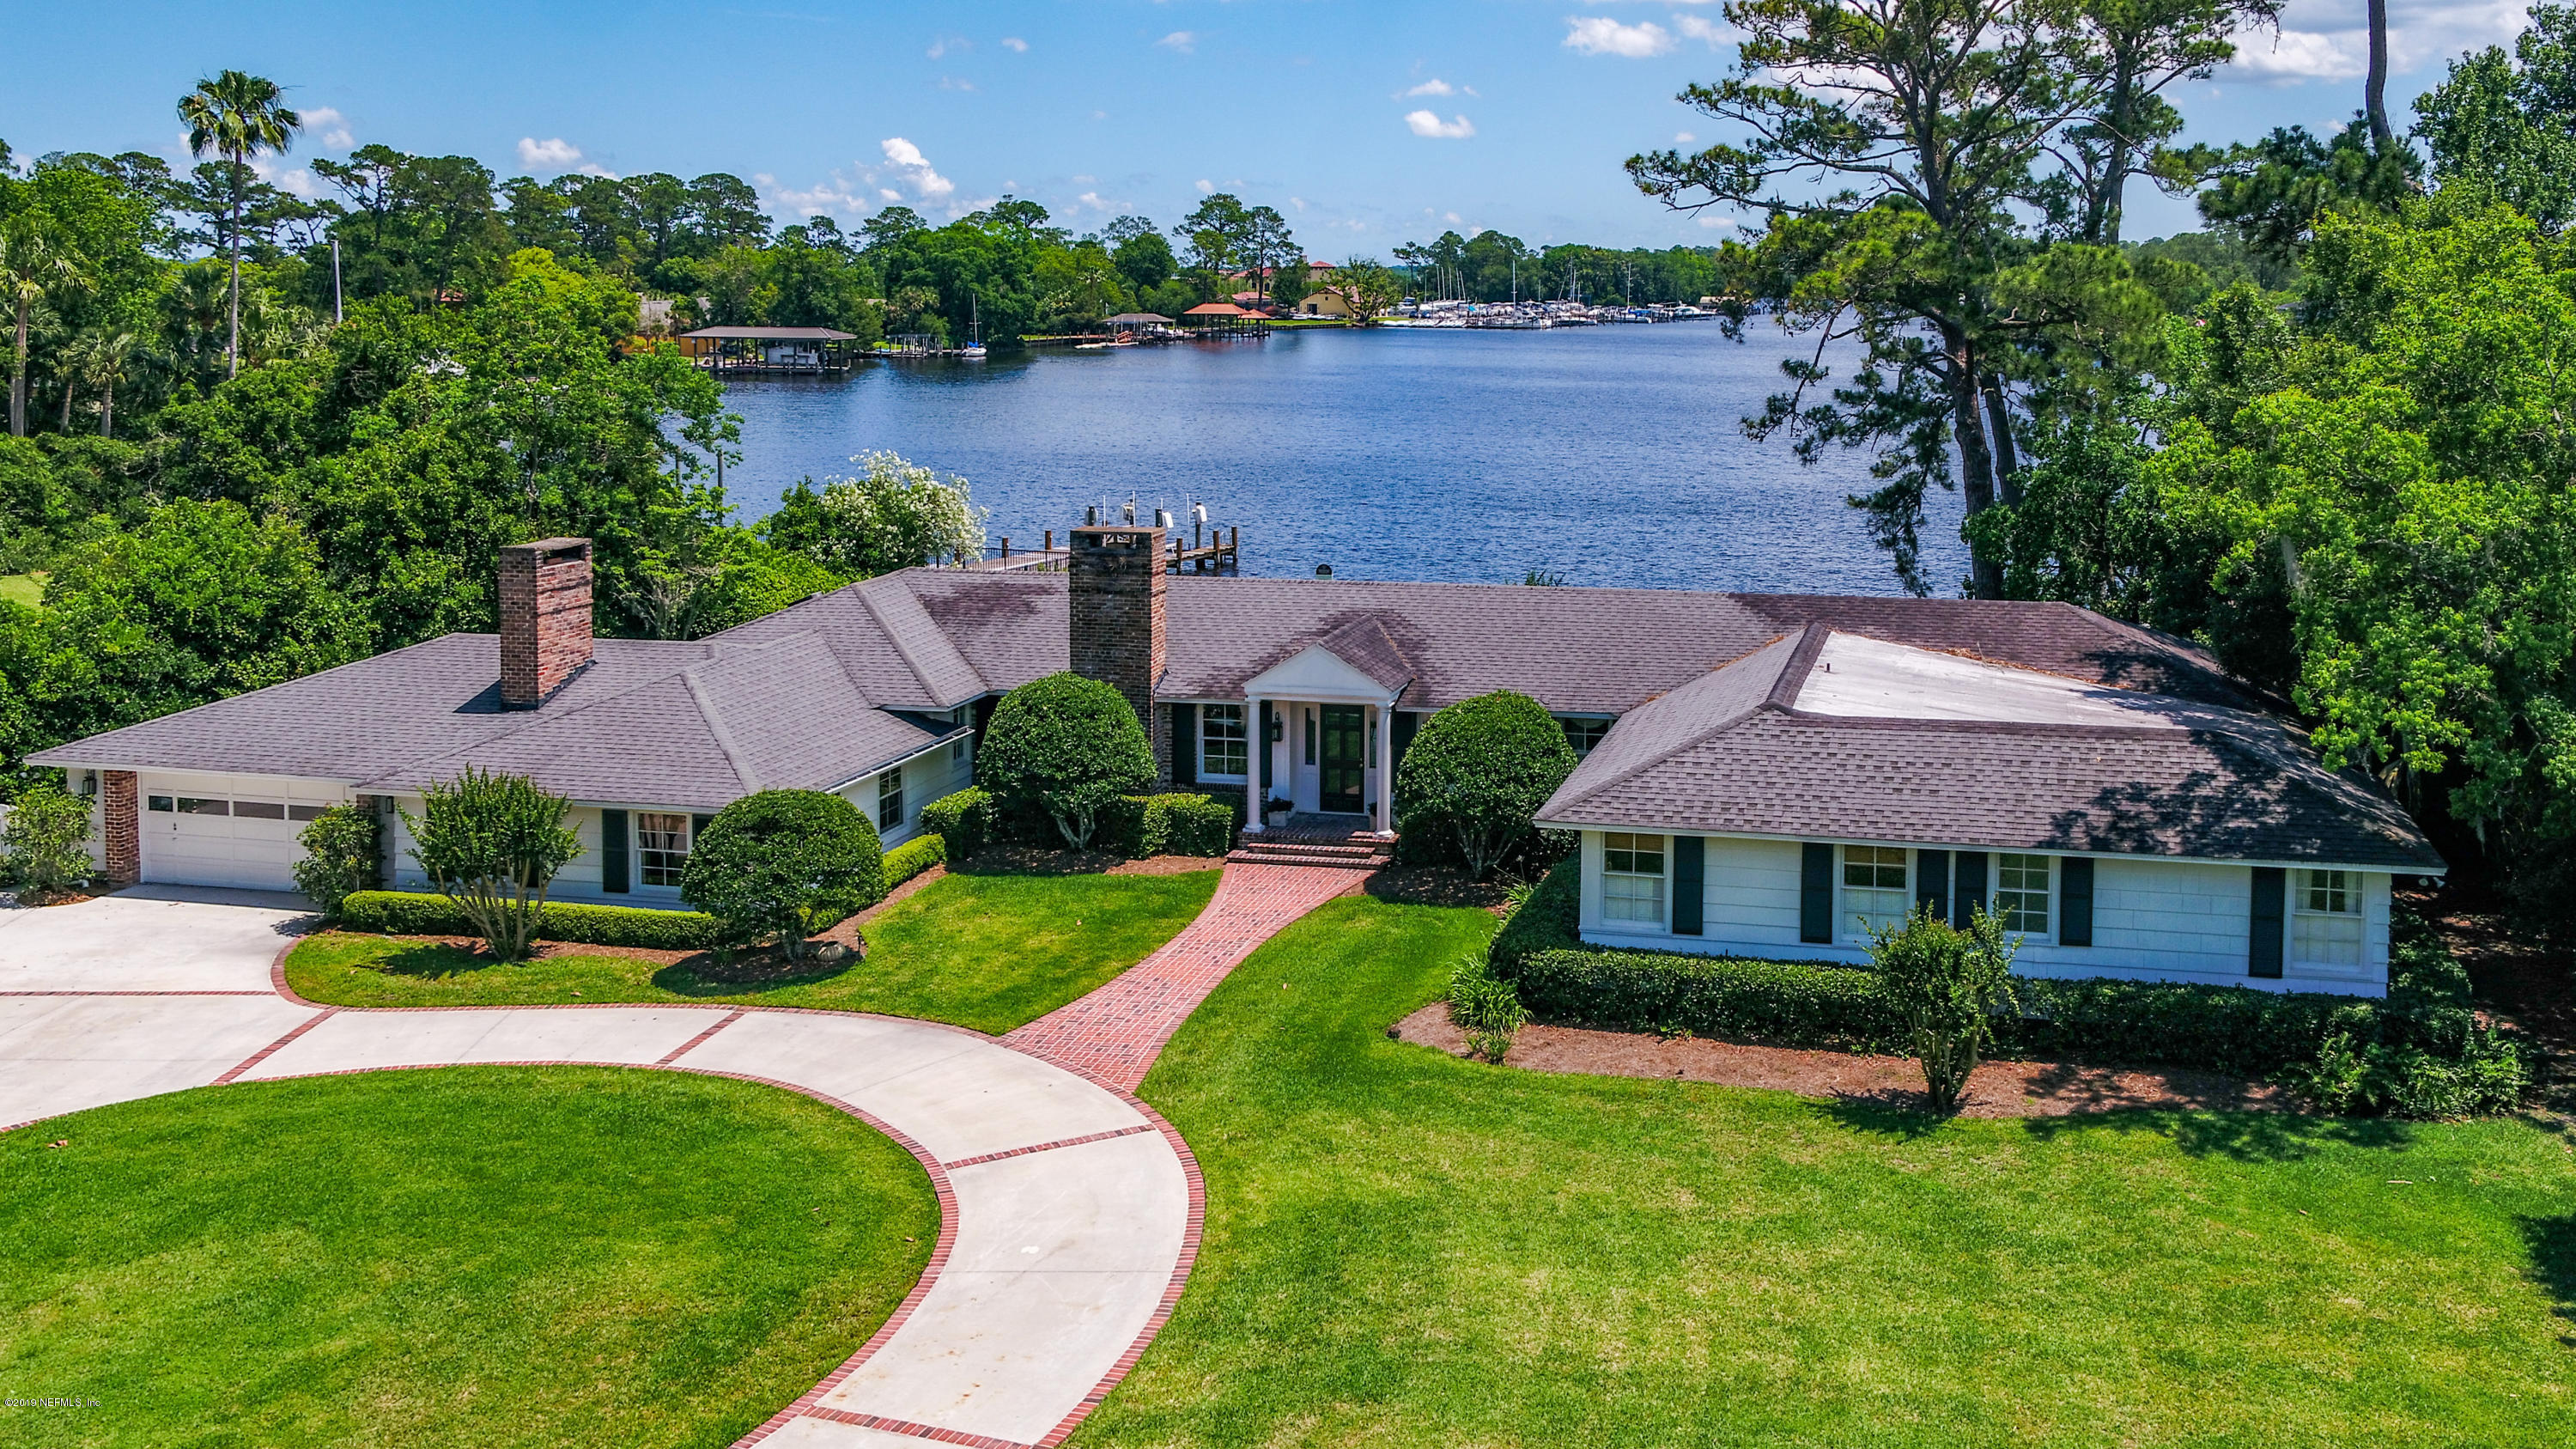 5015 PIRATES COVE, JACKSONVILLE, FLORIDA 32210, 4 Bedrooms Bedrooms, ,4 BathroomsBathrooms,Residential - single family,For sale,PIRATES COVE,993056